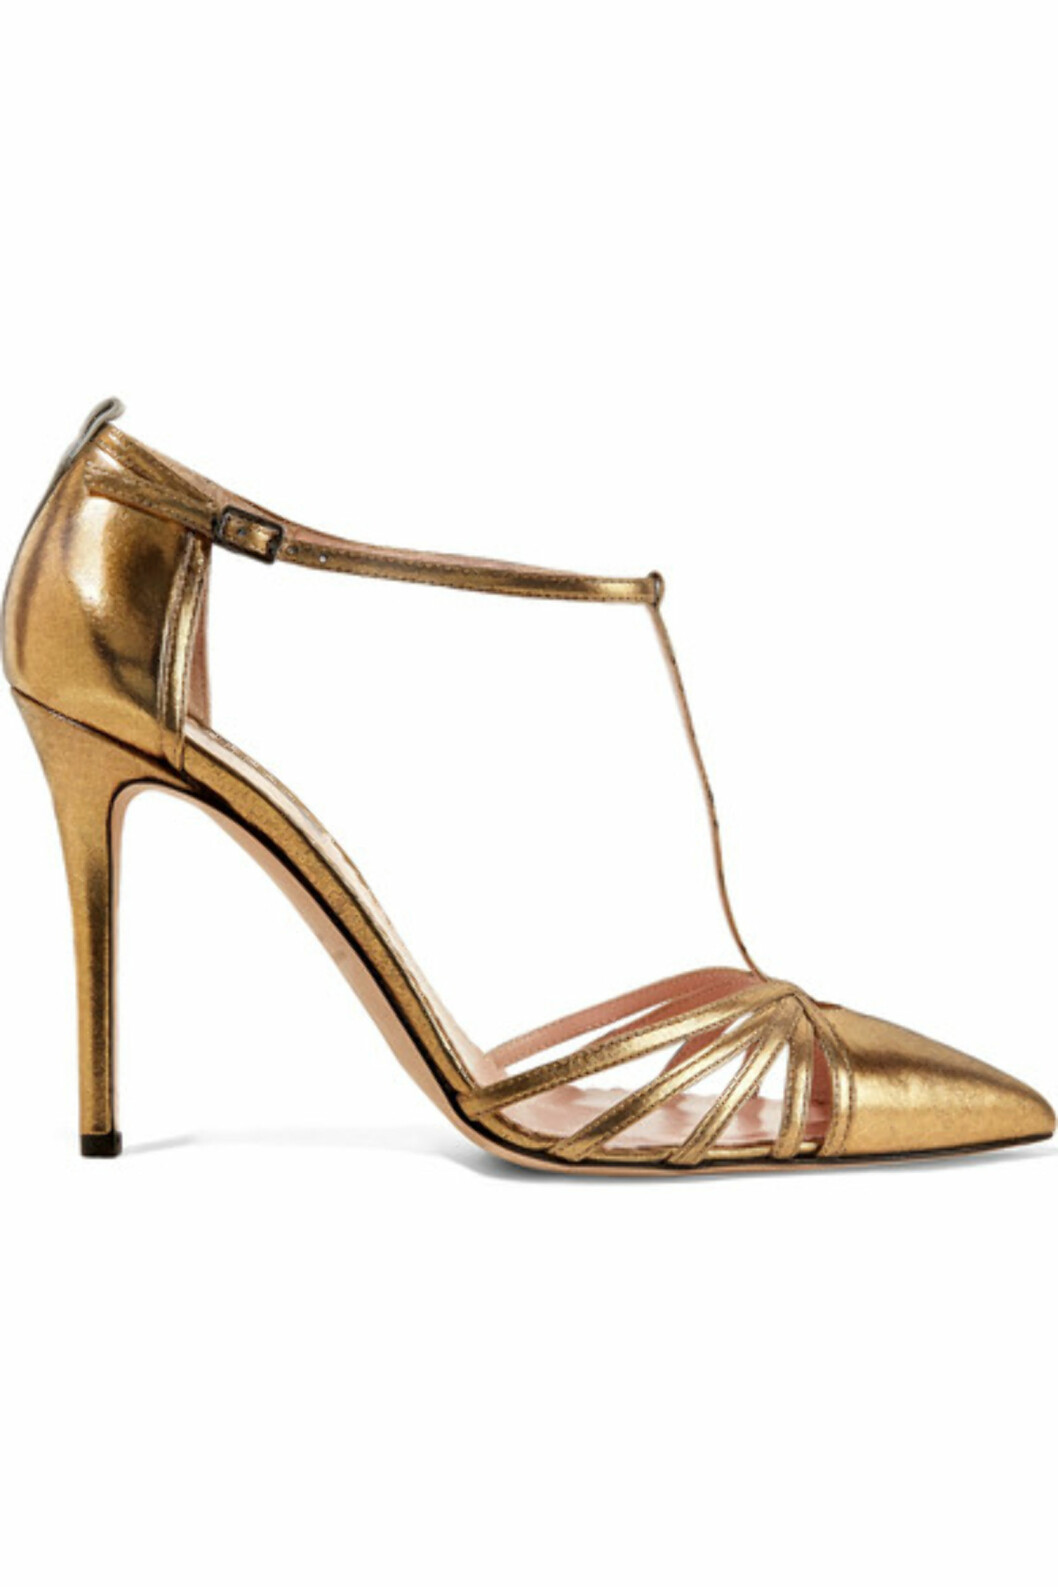 Hæler fra SJP by Sarah Jessica Parker via Net-a-porter.com | kr 2941 | https://www.net-a-porter.com/no/en/product/800983/sjp_by_sarah_jessica_parker/carrie-metallic-leather-pumps